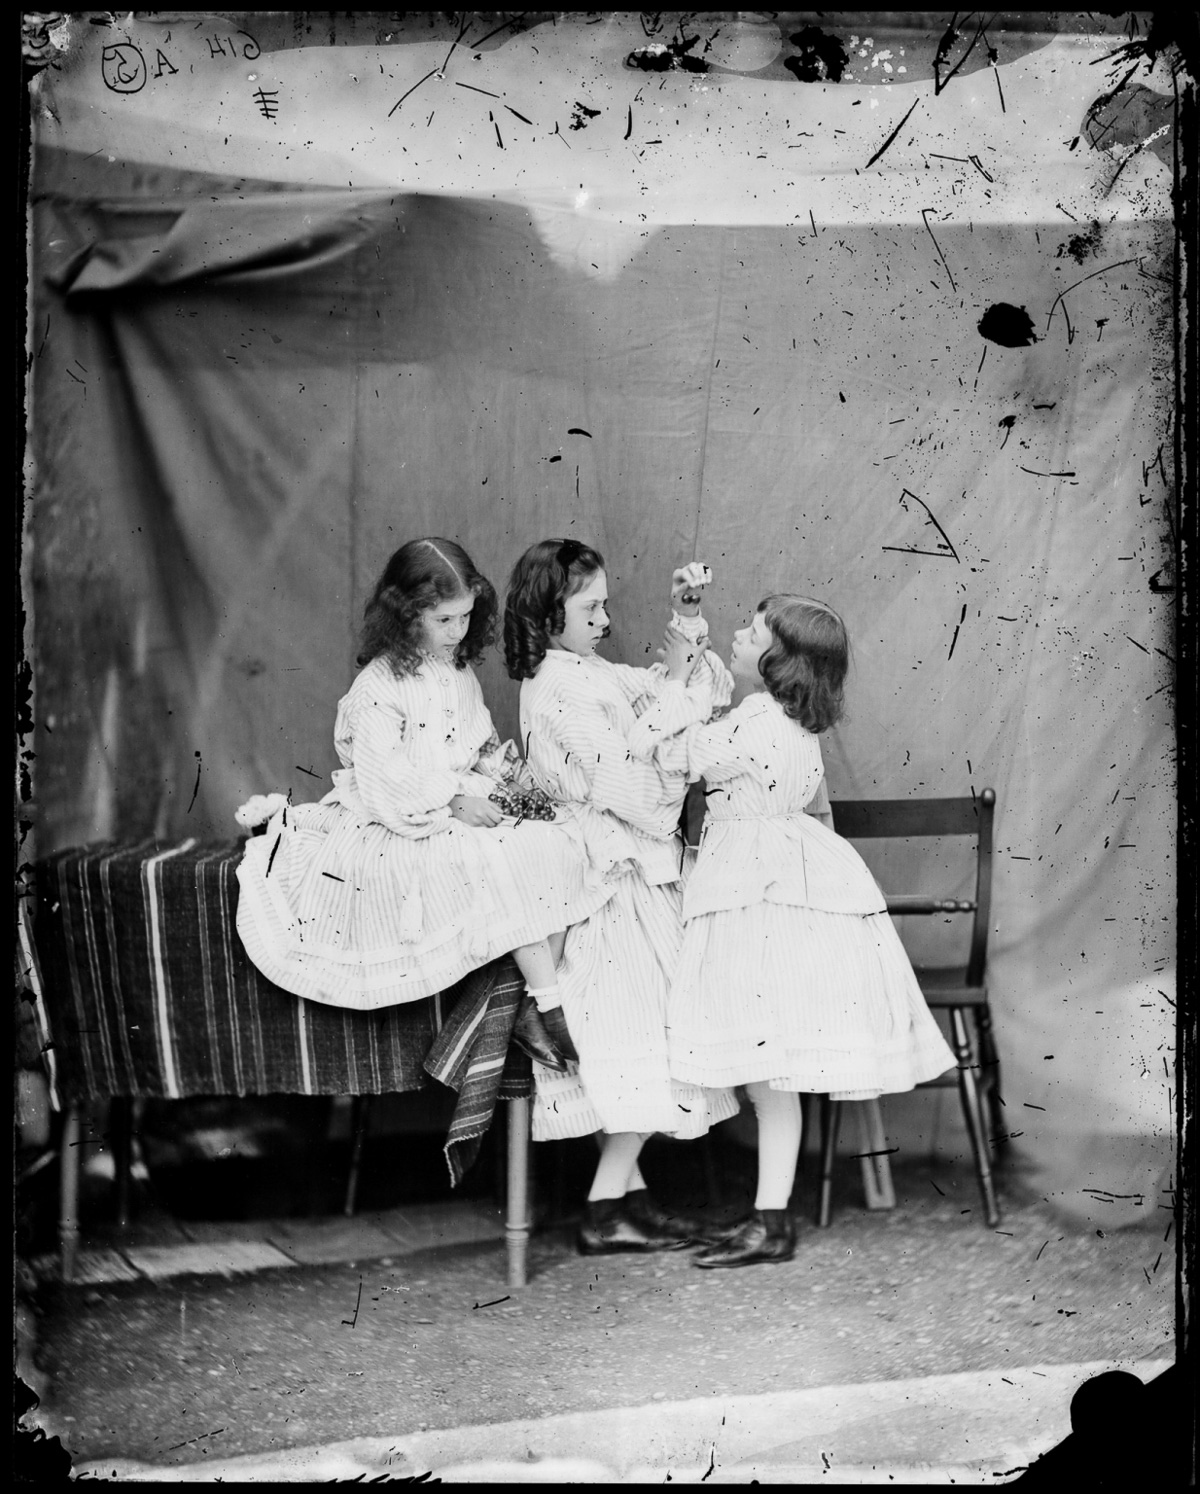 http://upload.wikimedia.org/wikipedia/commons/5/5b/Liddell,_Edith,_Lorina_%26_Alice,_%27Open_your_mouth...%27_(Lewis_Carroll,_07.1860).jpg